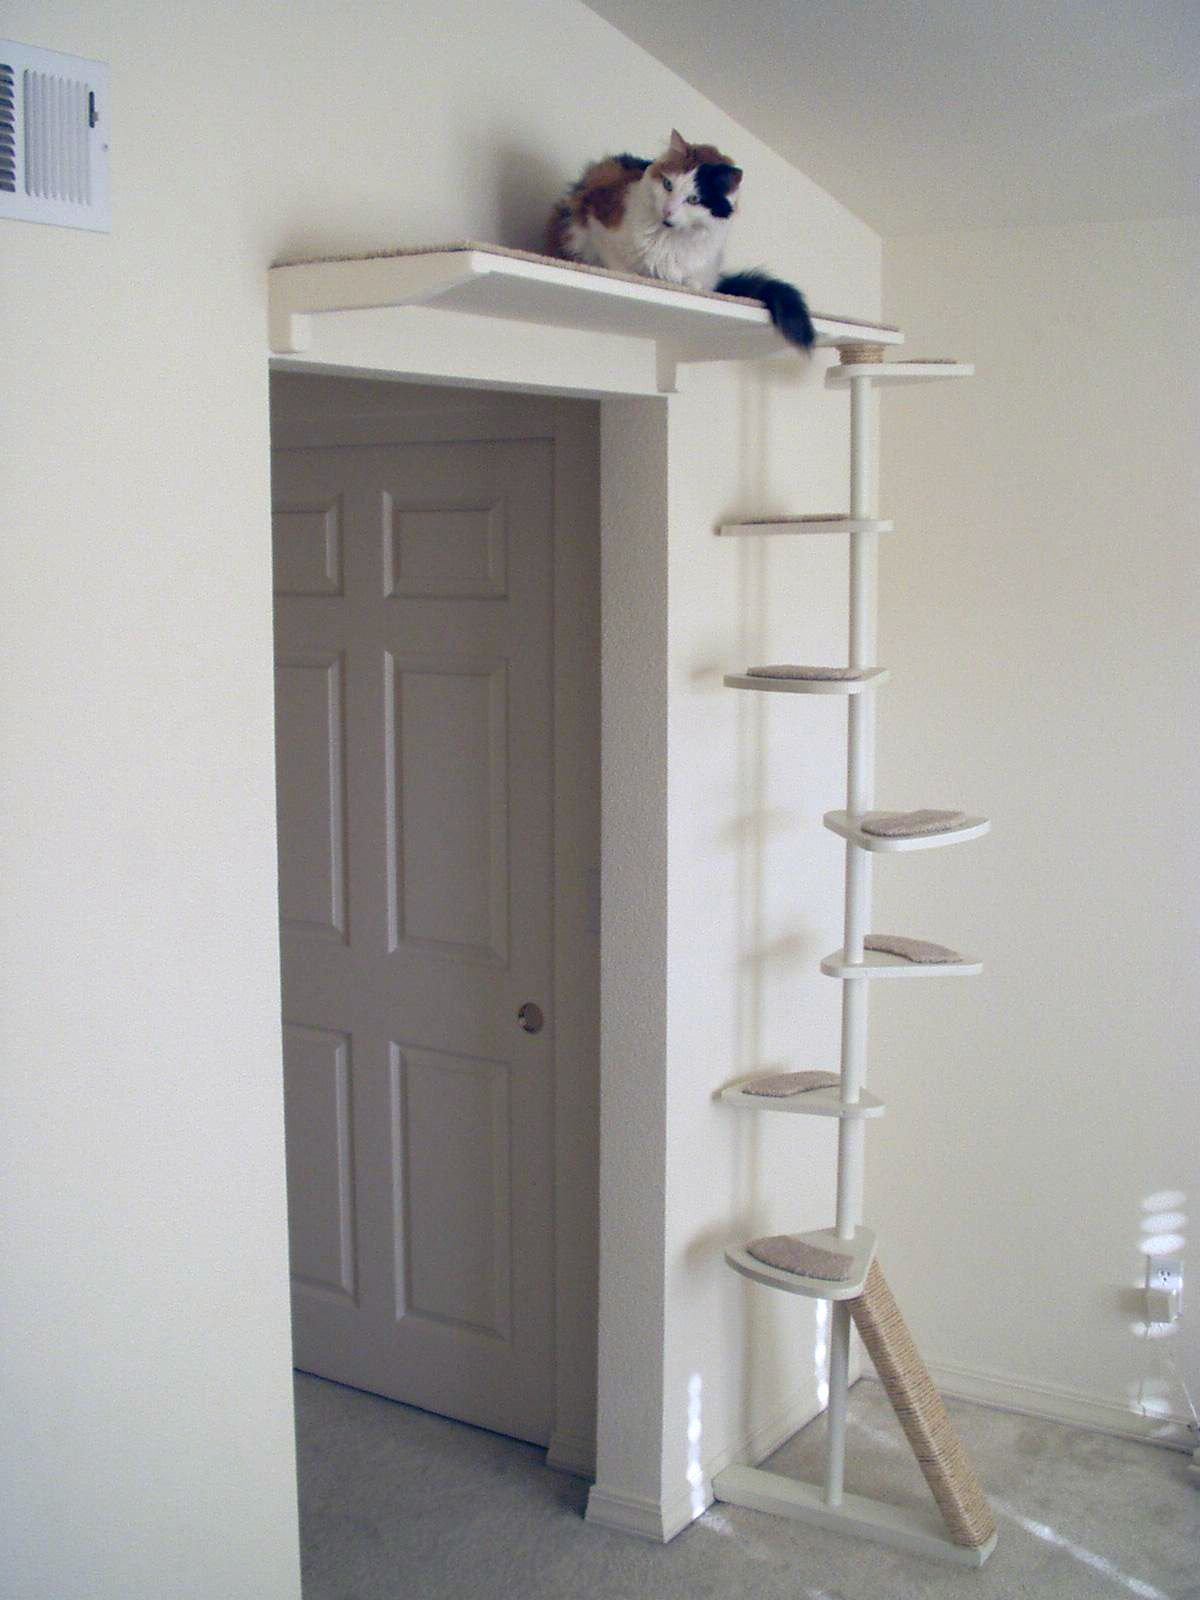 or not to a cat tree